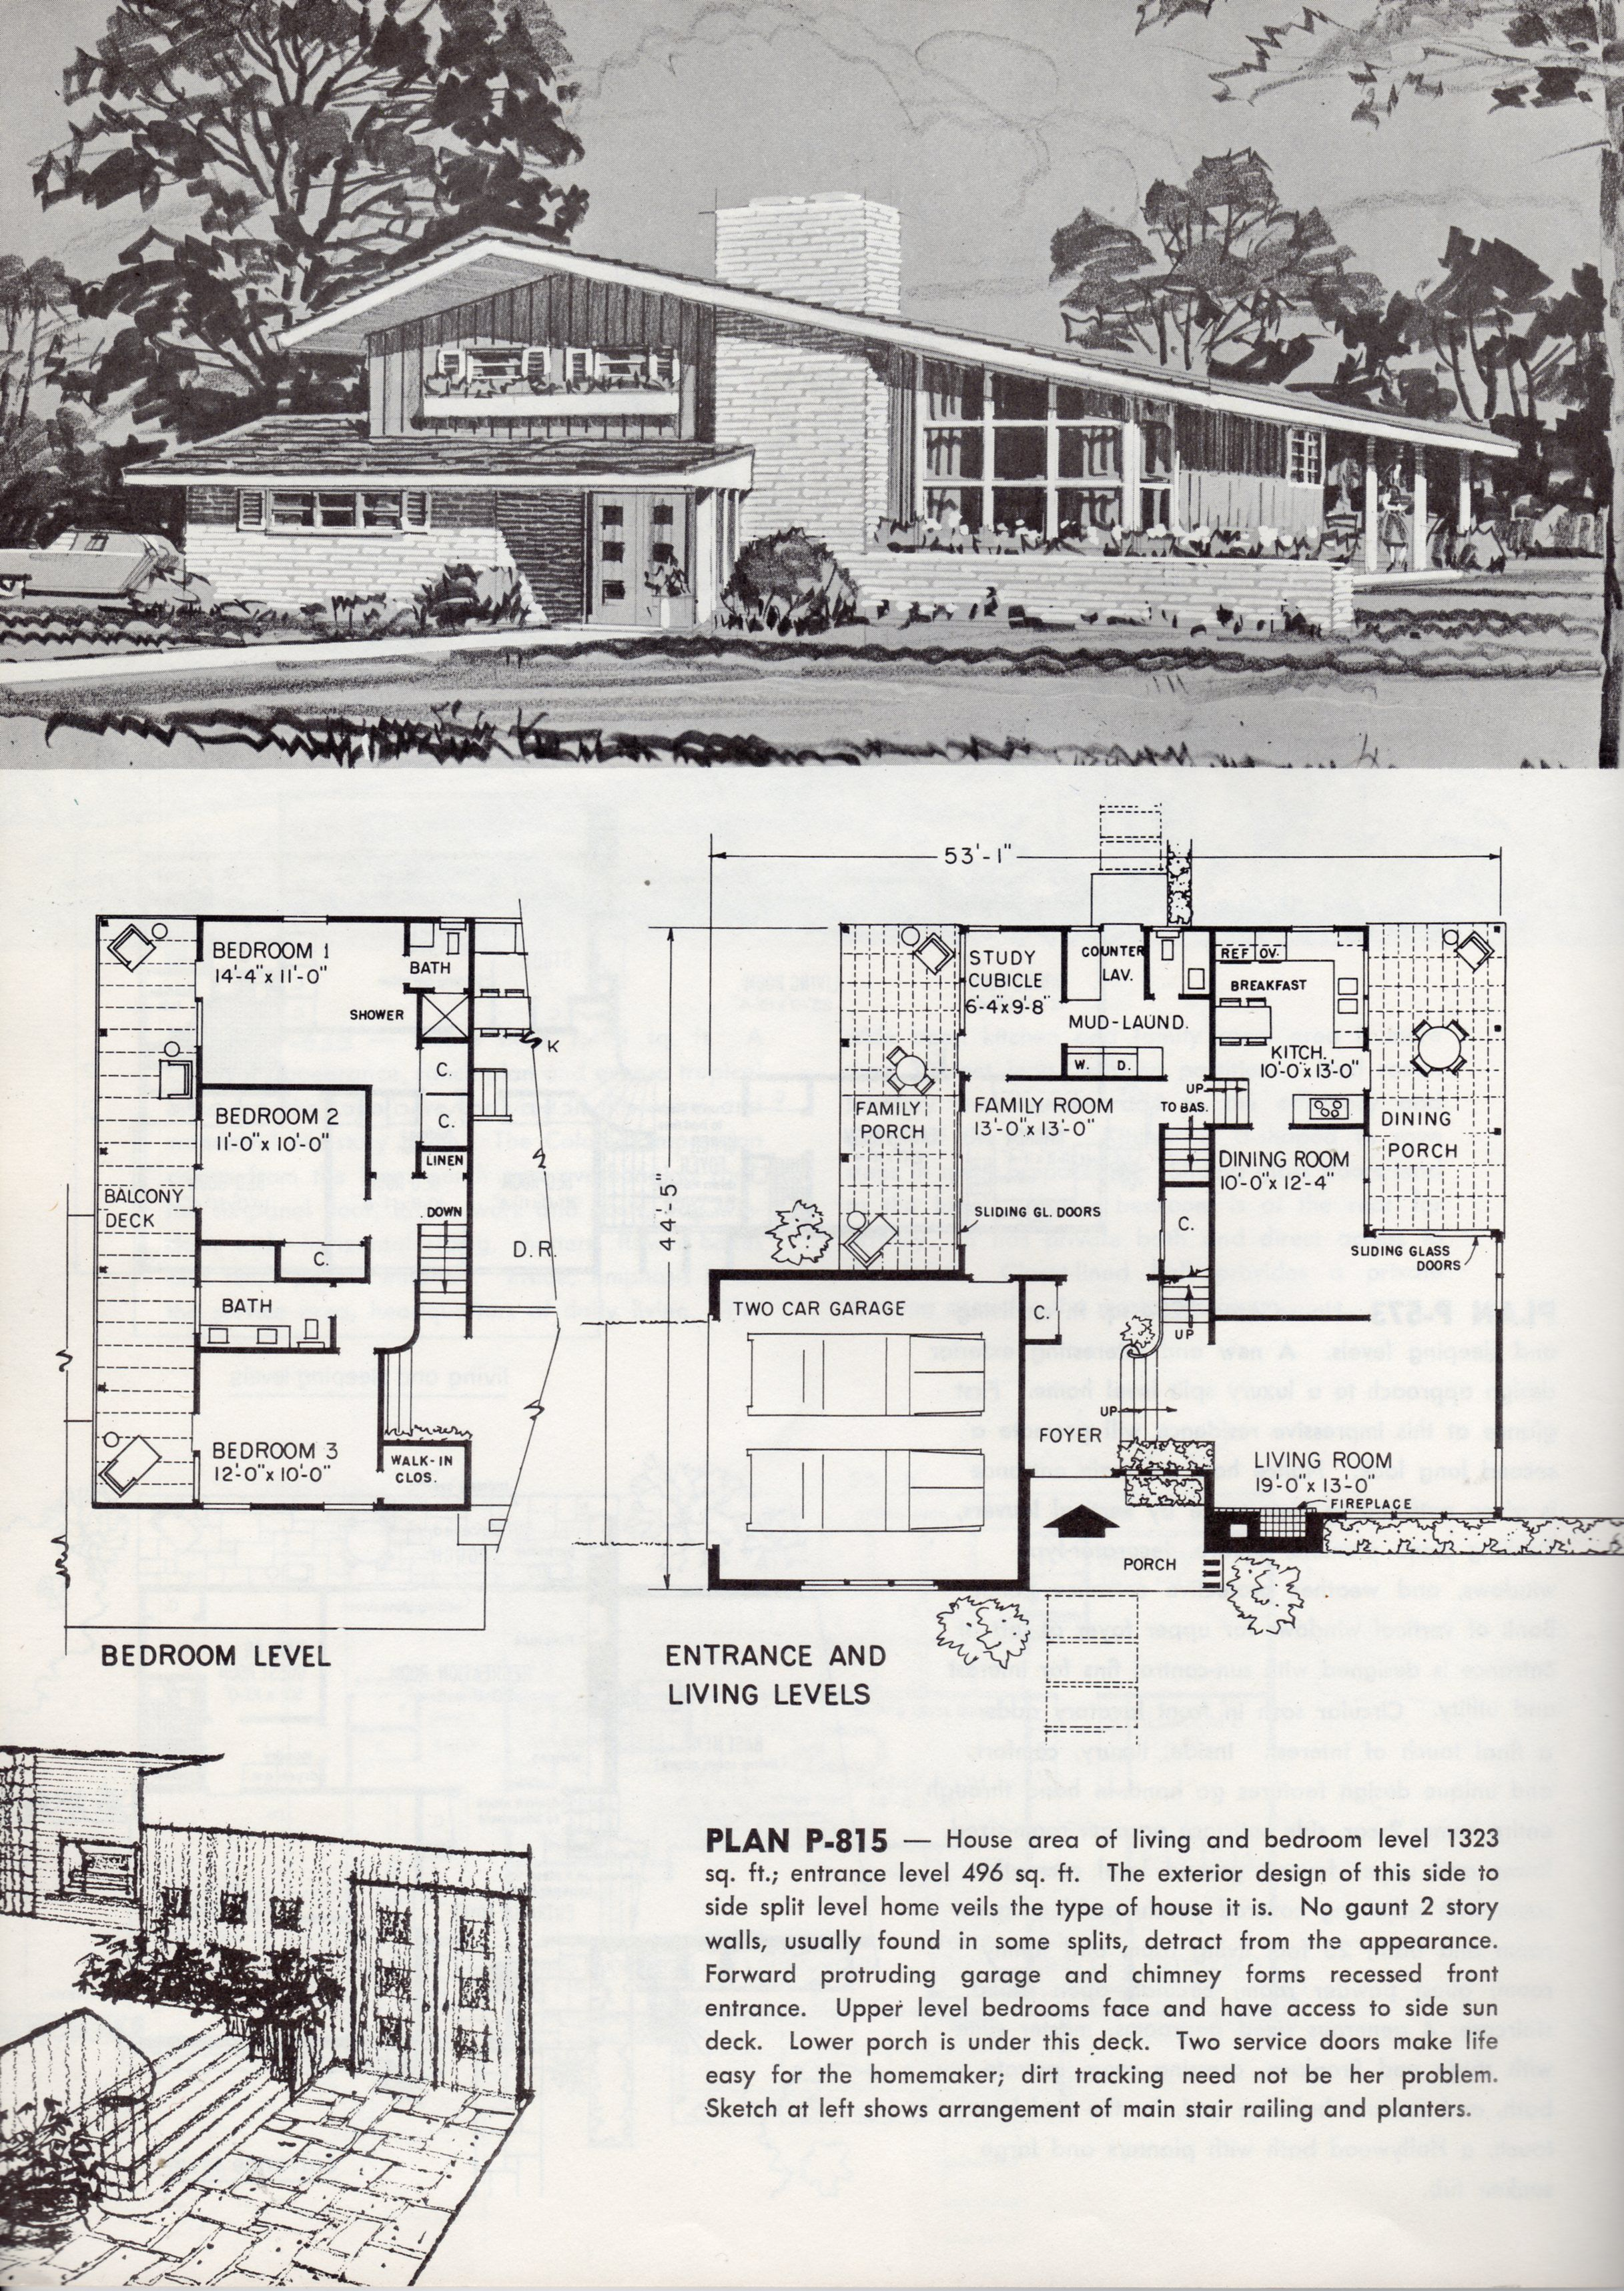 Pin By Awesomegui94 On Vintage House Plans Modern Floor Plans Mid Century Modern House Plans Mid Century Modern House